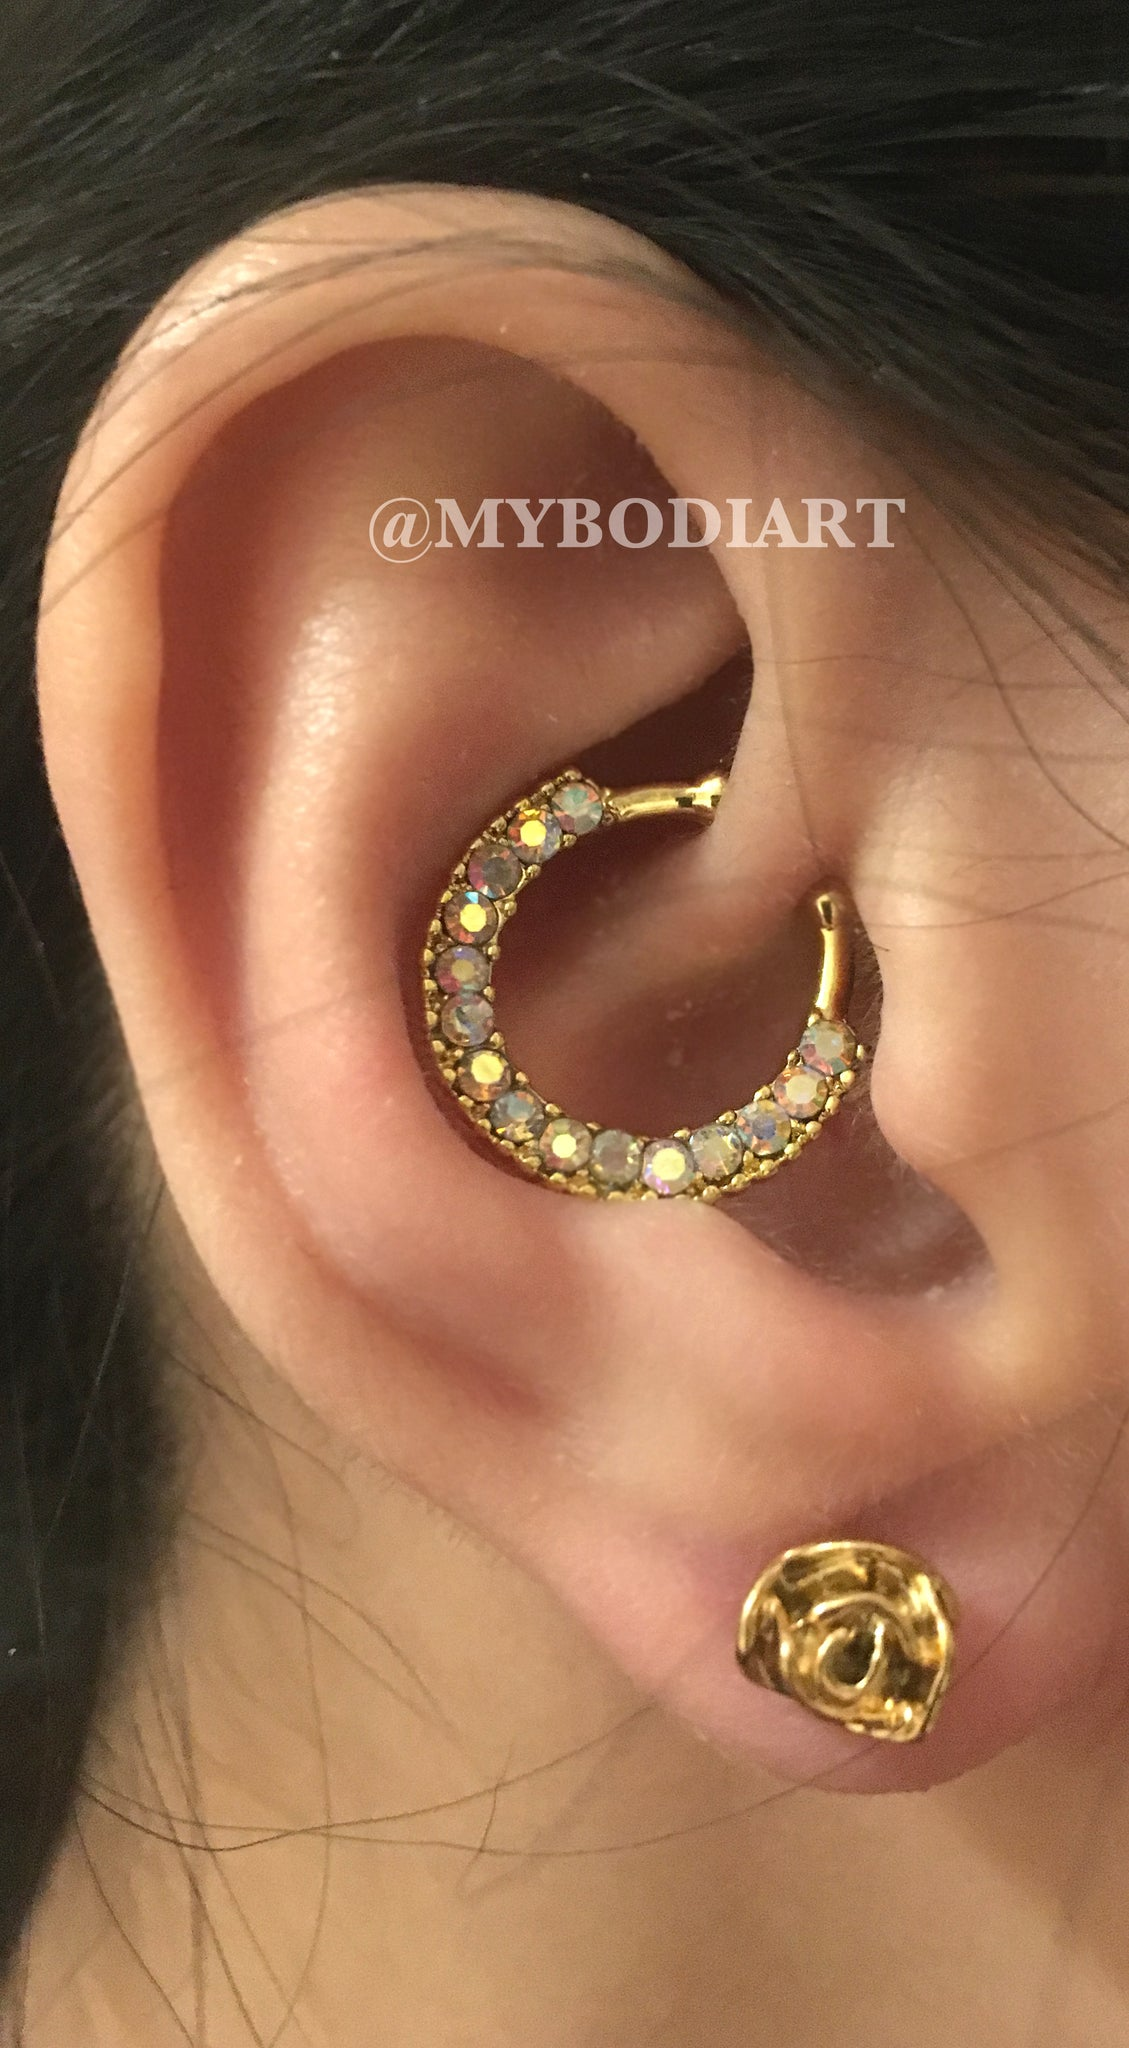 Gold Ear Piercing Ideas - Rose Earring Stud - Cartilage Daith Rook Ring Hoop - www.MyBodiArt.com